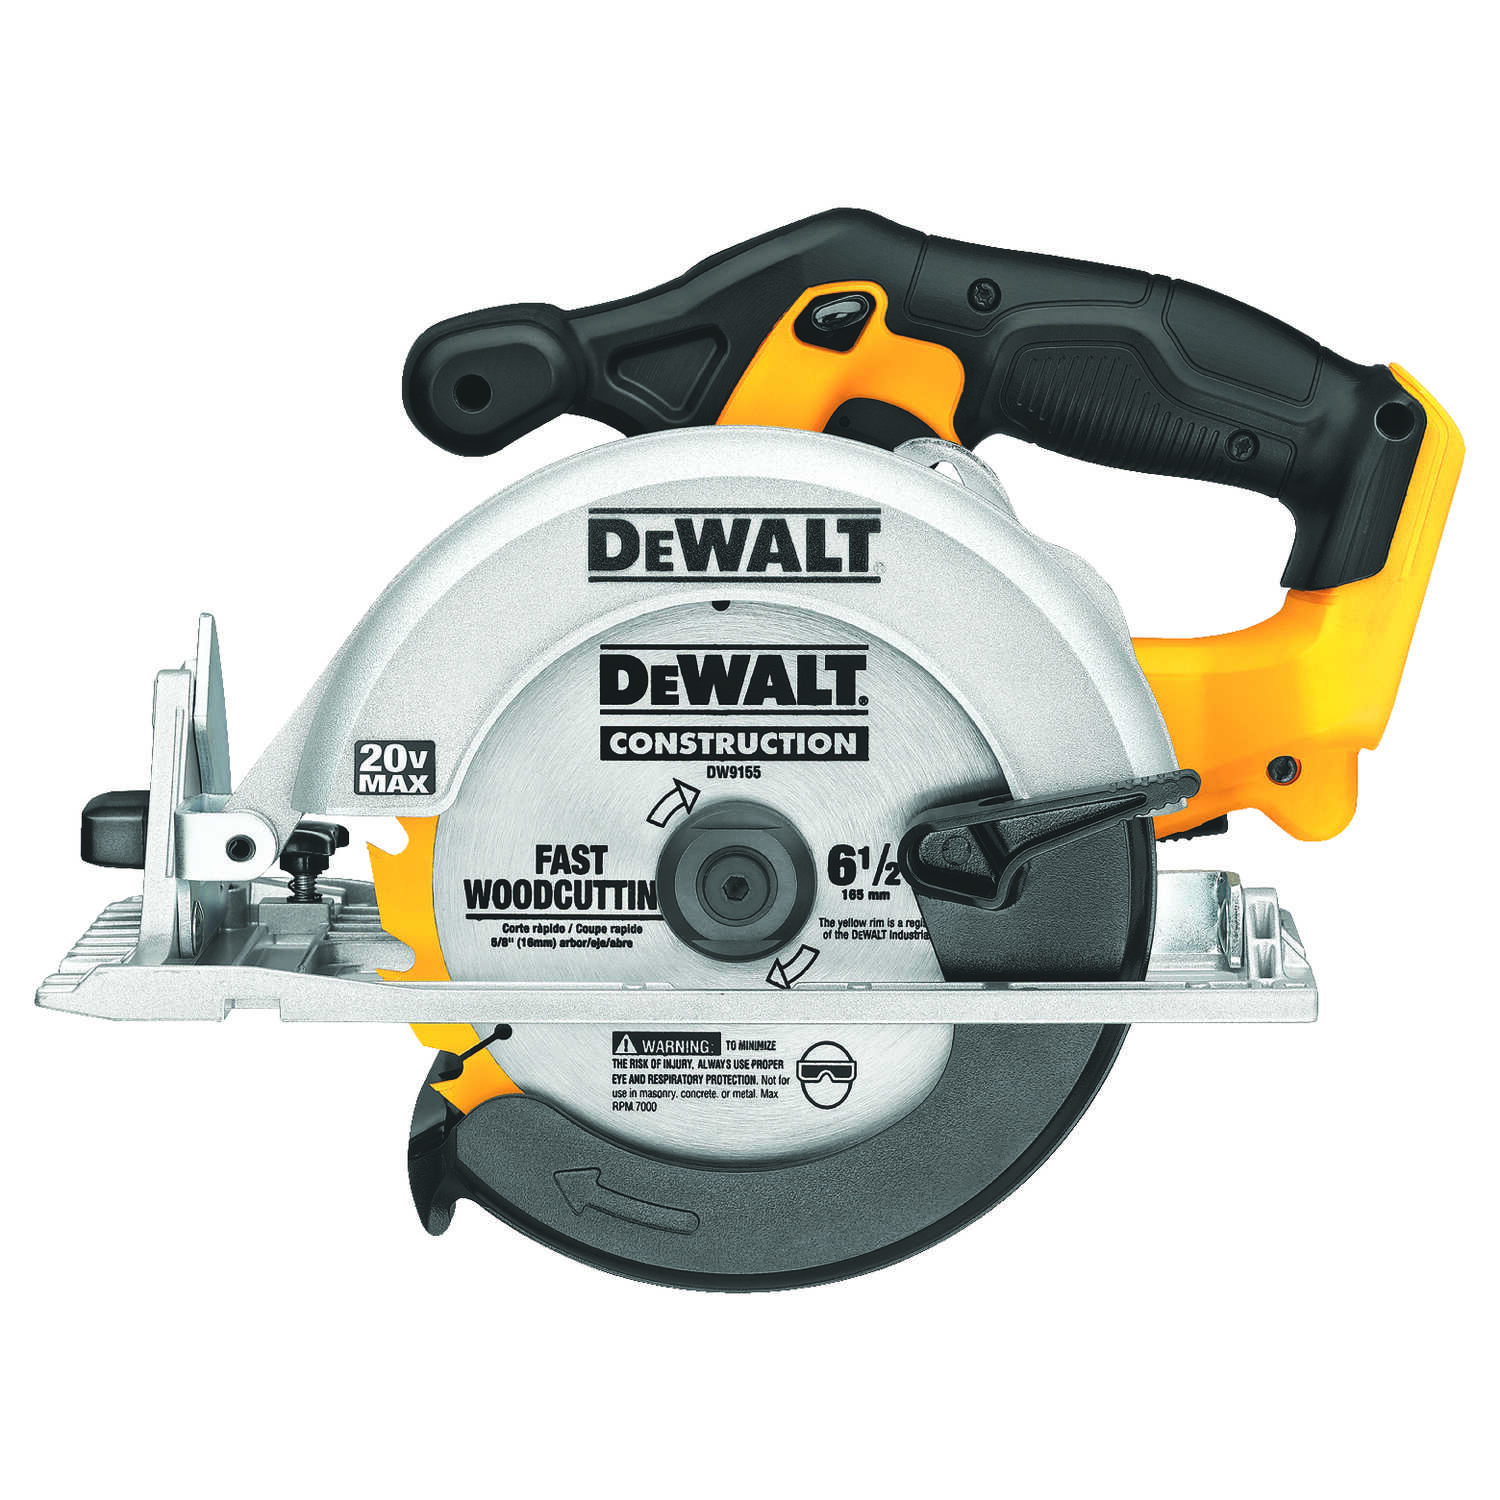 DeWalt  6-1/2 in. 20 max volts Cordless  Circular Saw  5150 rpm